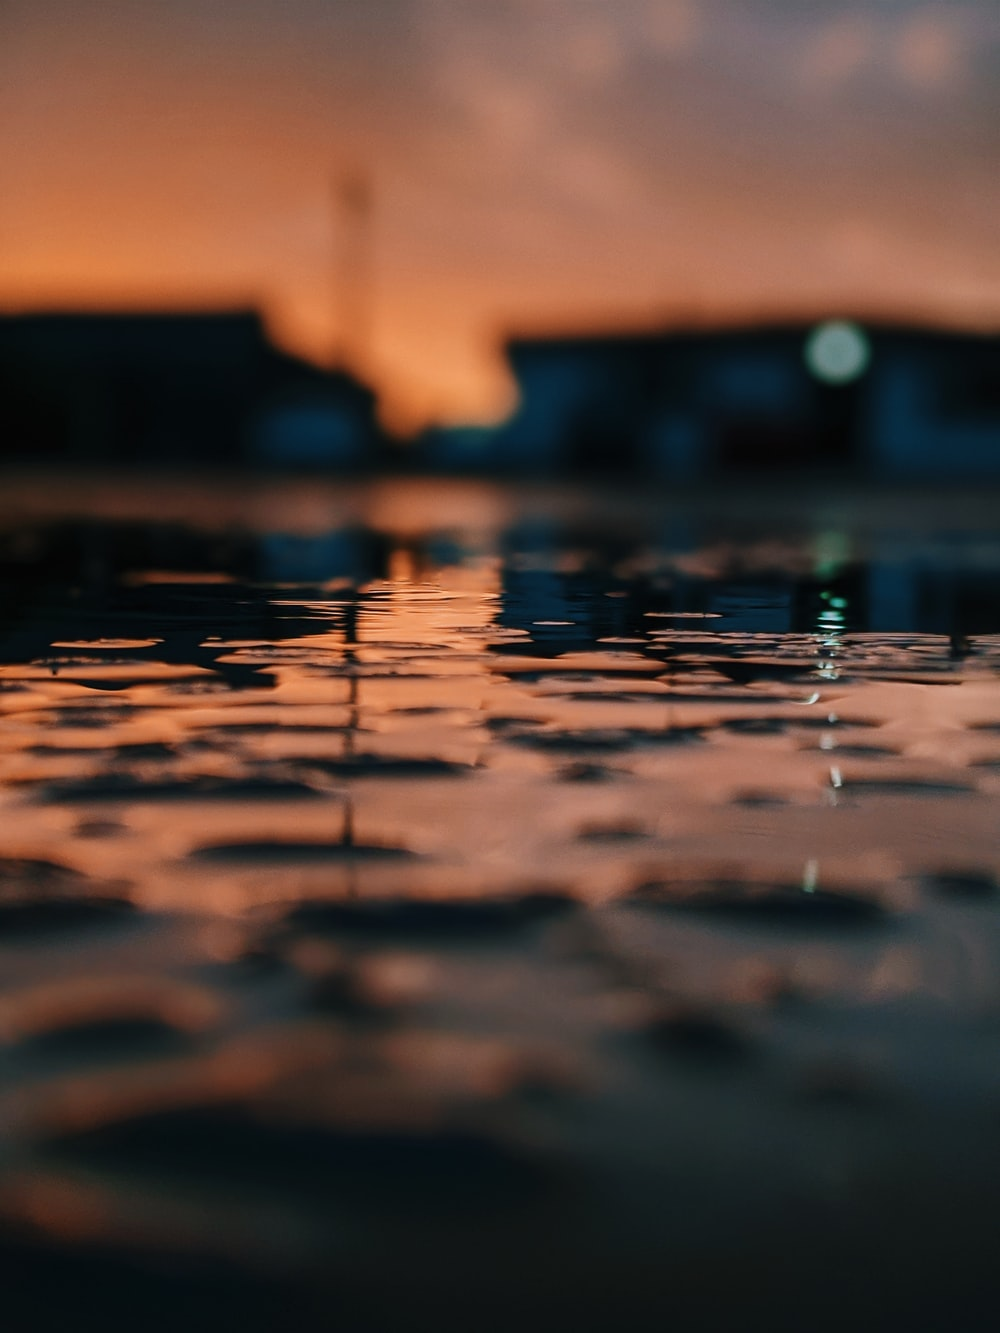 water droplets on the ground during sunset